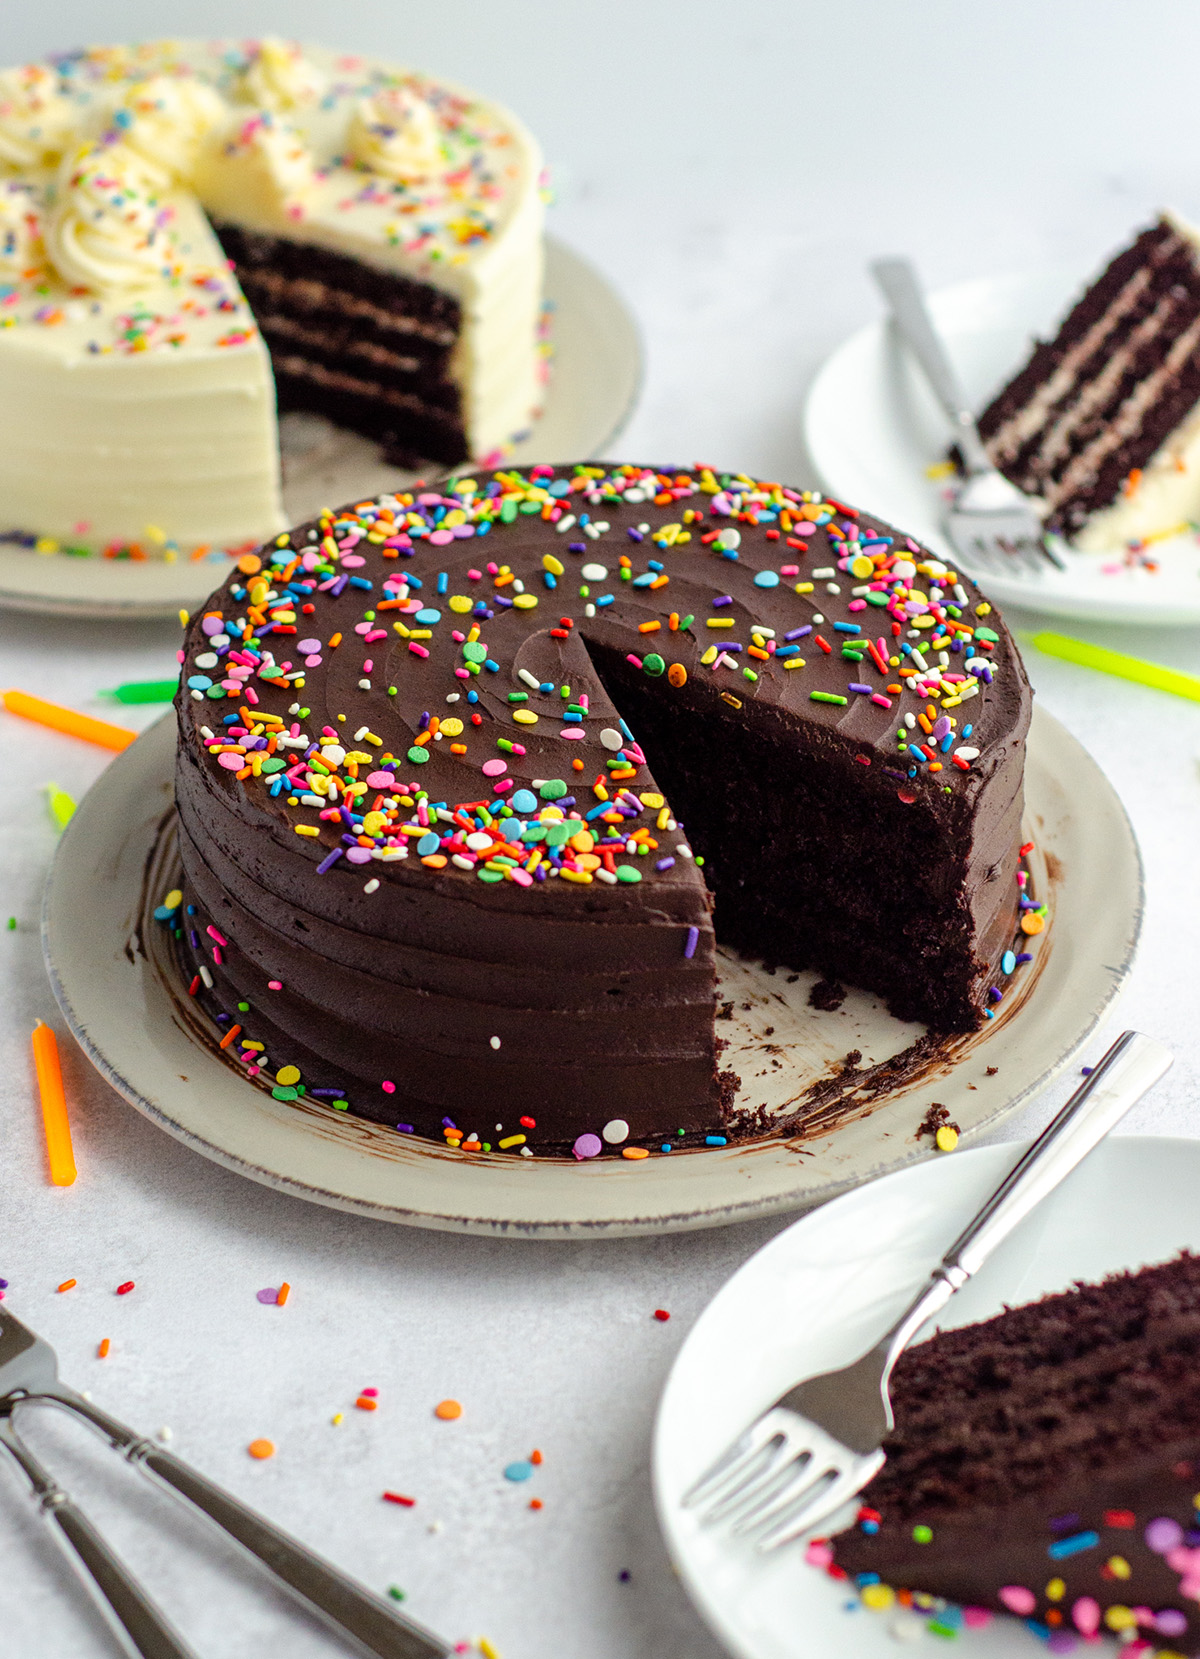 Chocolate Layer Cake: Soft, moist, and smooth chocolate layer cake with the richest chocolate flavor you'll ever taste. Super easy and only one bowl needed! Pair with my favorite chocolate buttercream, go-to vanilla buttercream, or something fancier to fit your liking.